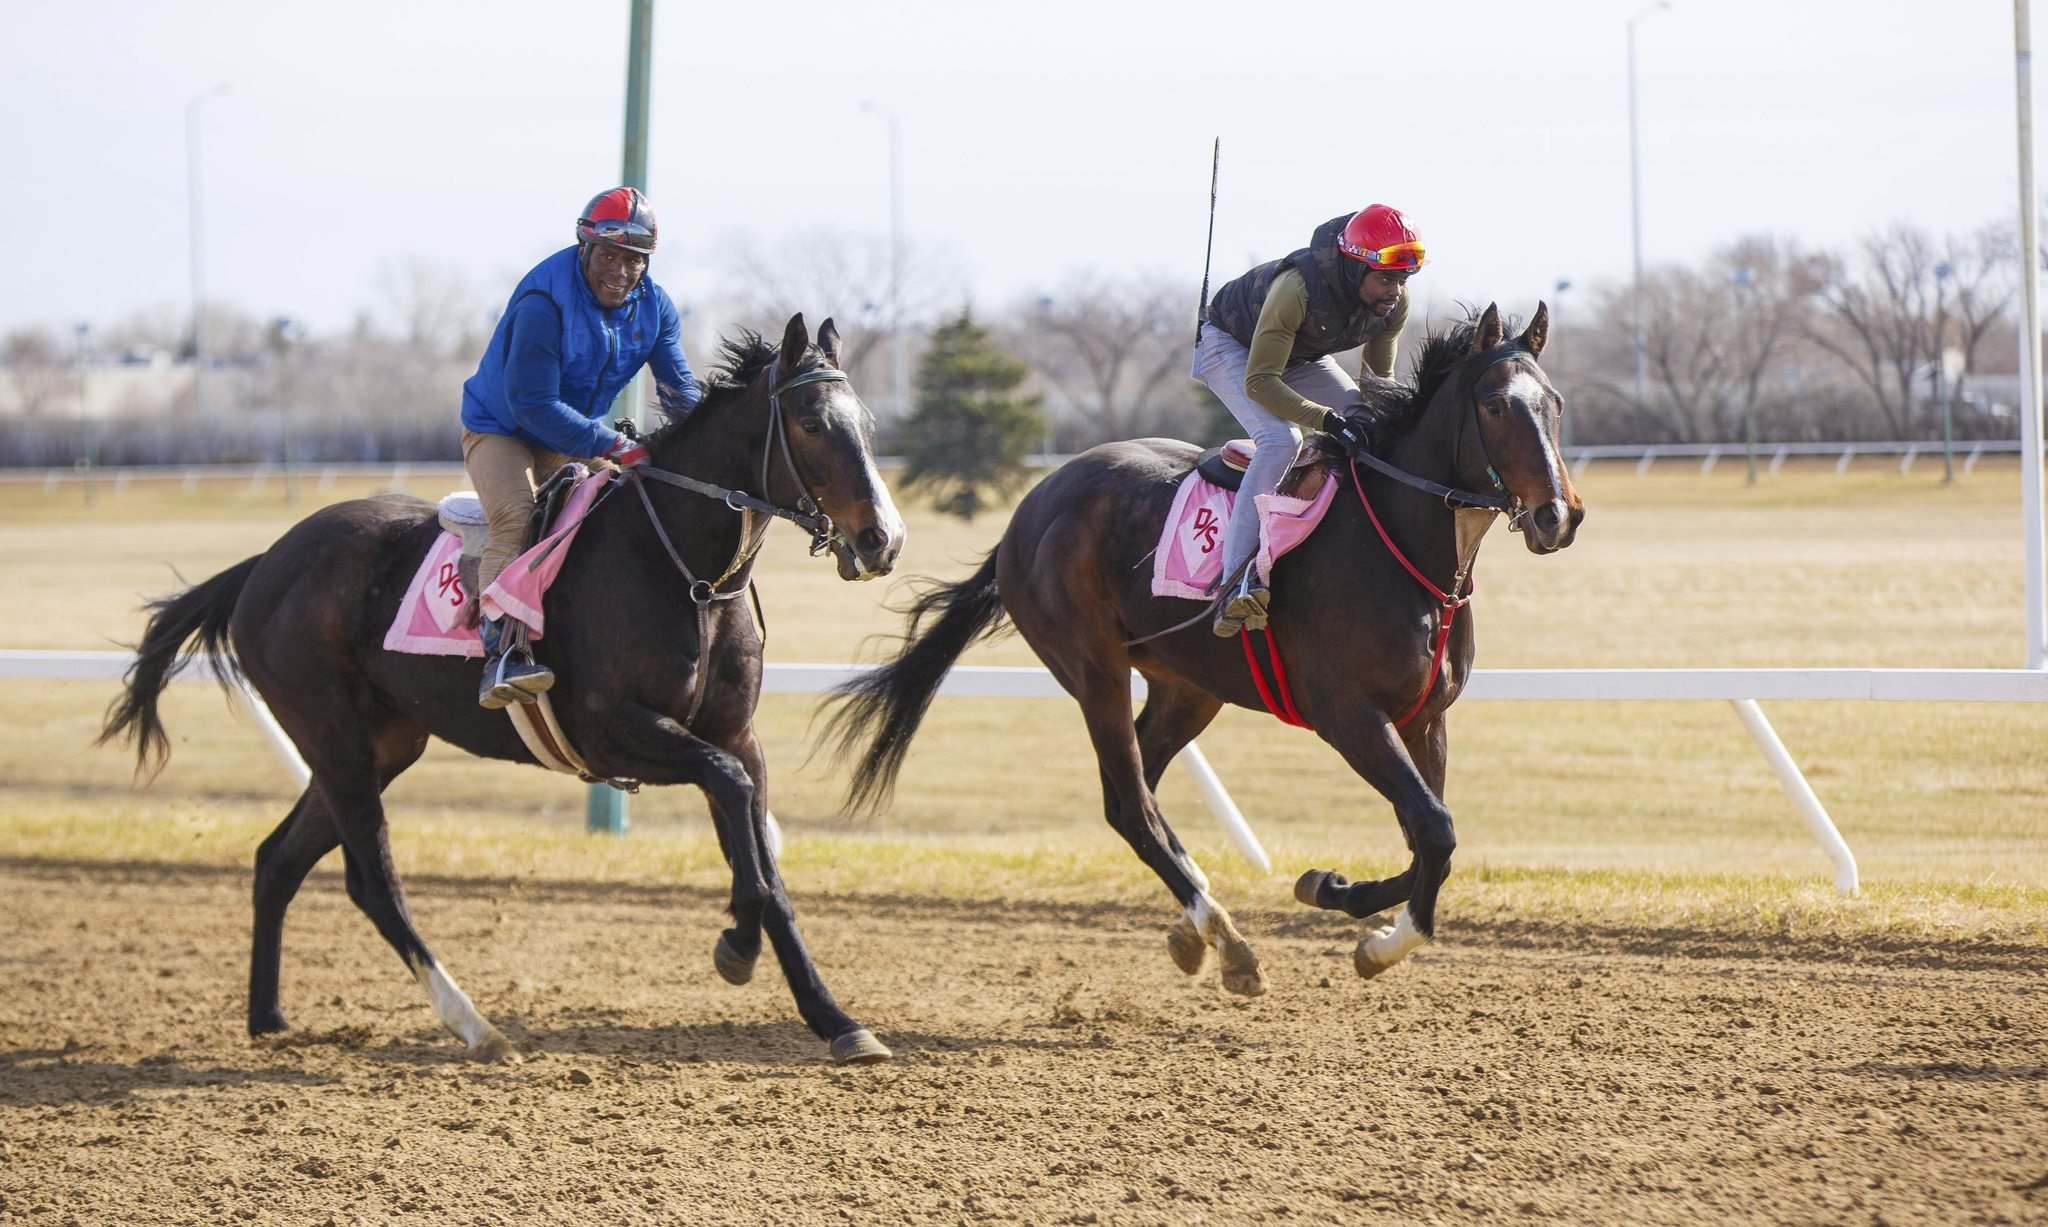 Sidney Blackwood (left) and Antonio Whitehall take their horses for their daily workout Thursday morning at Assiniboia Downs.